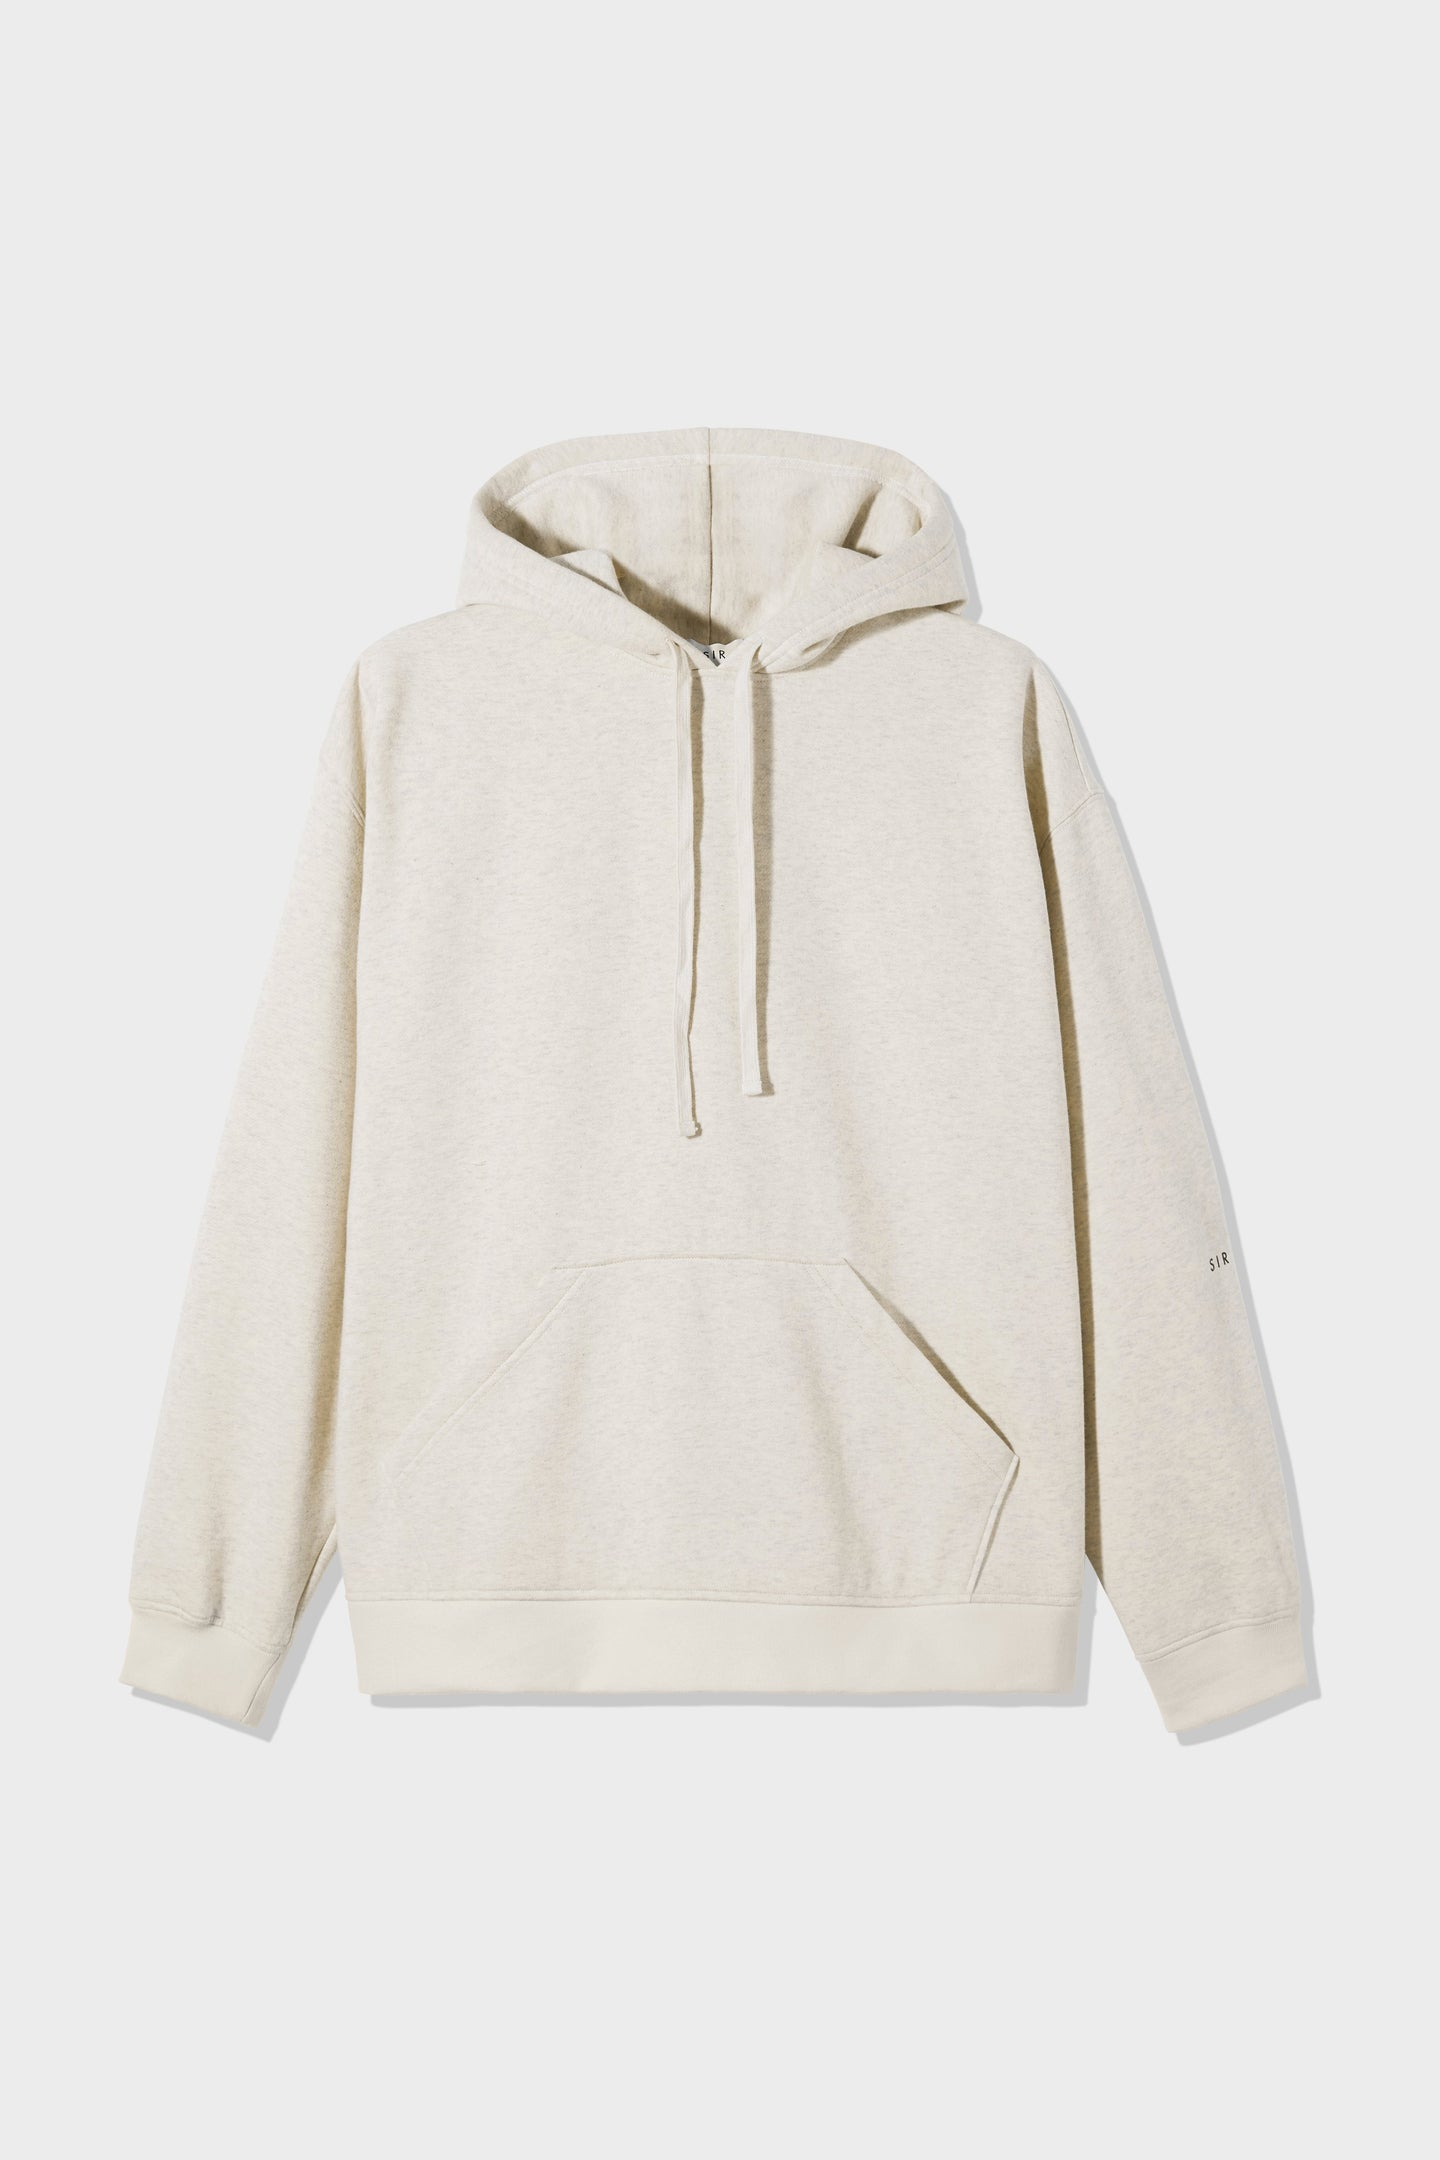 SIR the label MENS HOODIE MARLE